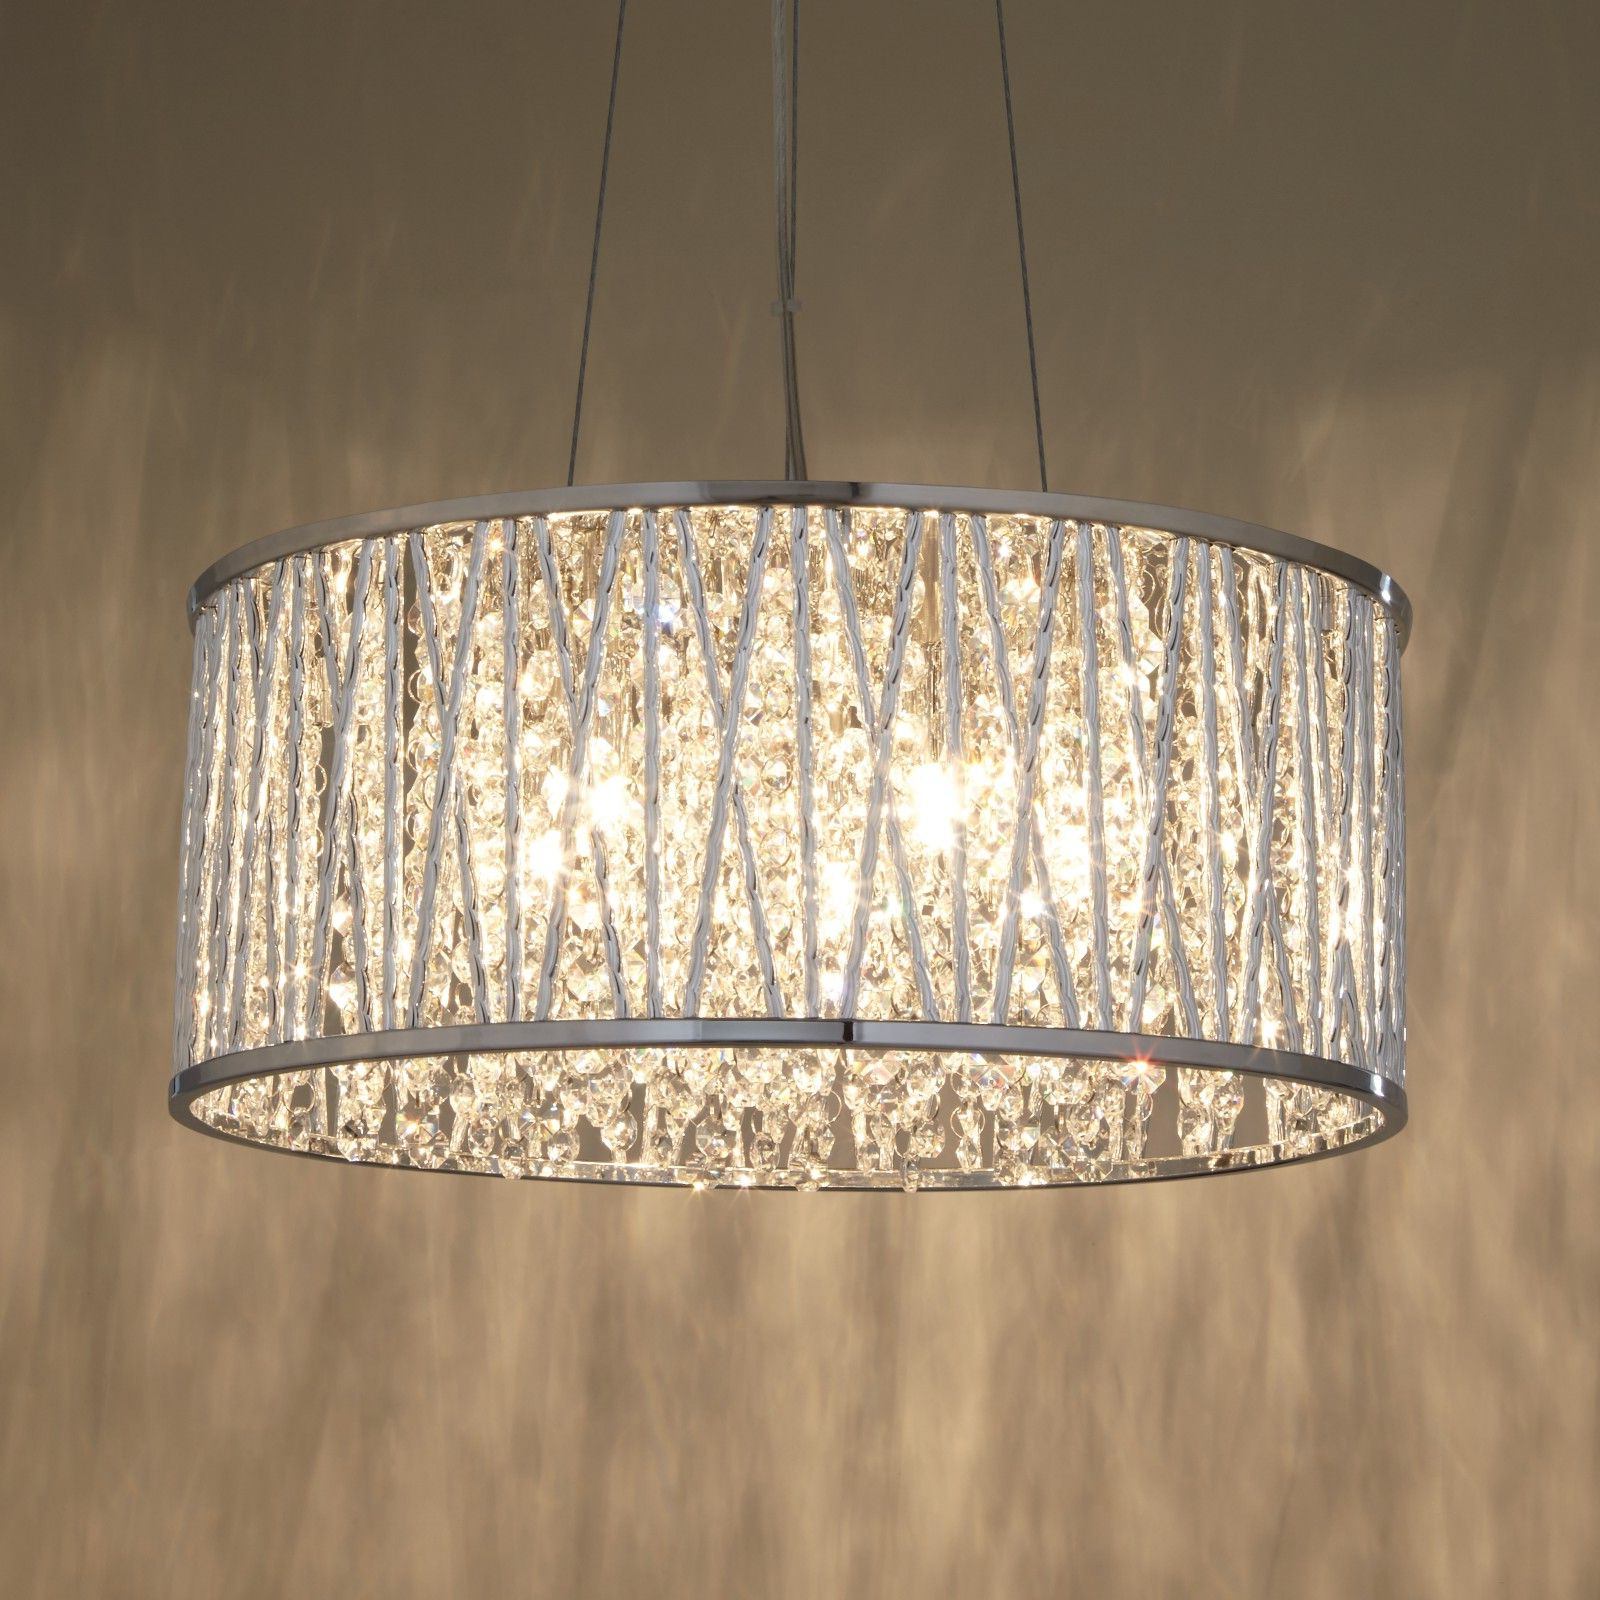 Most Popular Emaria 3 Light Single Drum Pendants In John Lewis & Partners Emilia Large Crystal Ceiling Light (View 17 of 25)